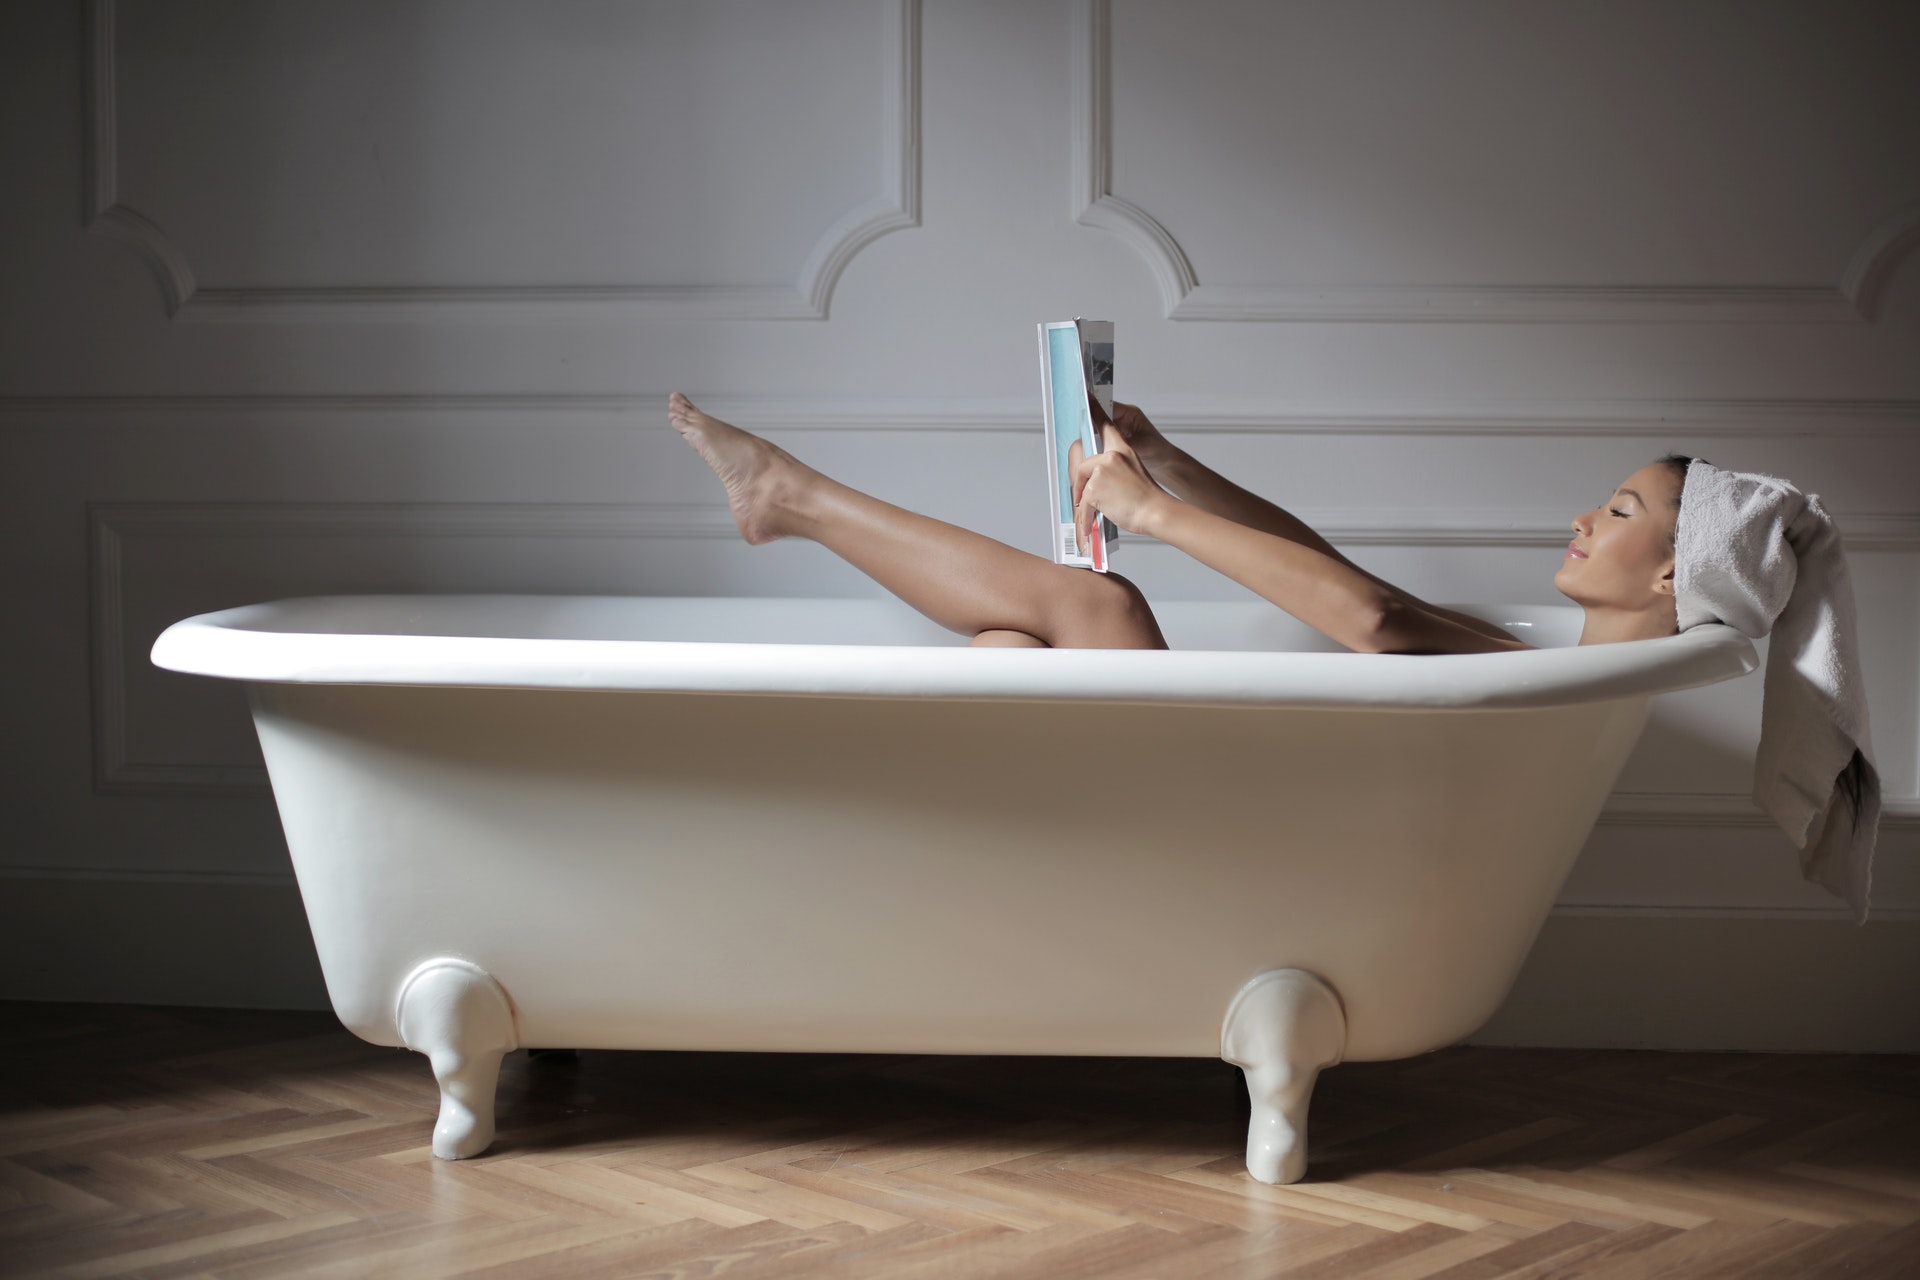 https://www.pexels.com/photo/person-in-bathtub-reading-magazine-3973164/